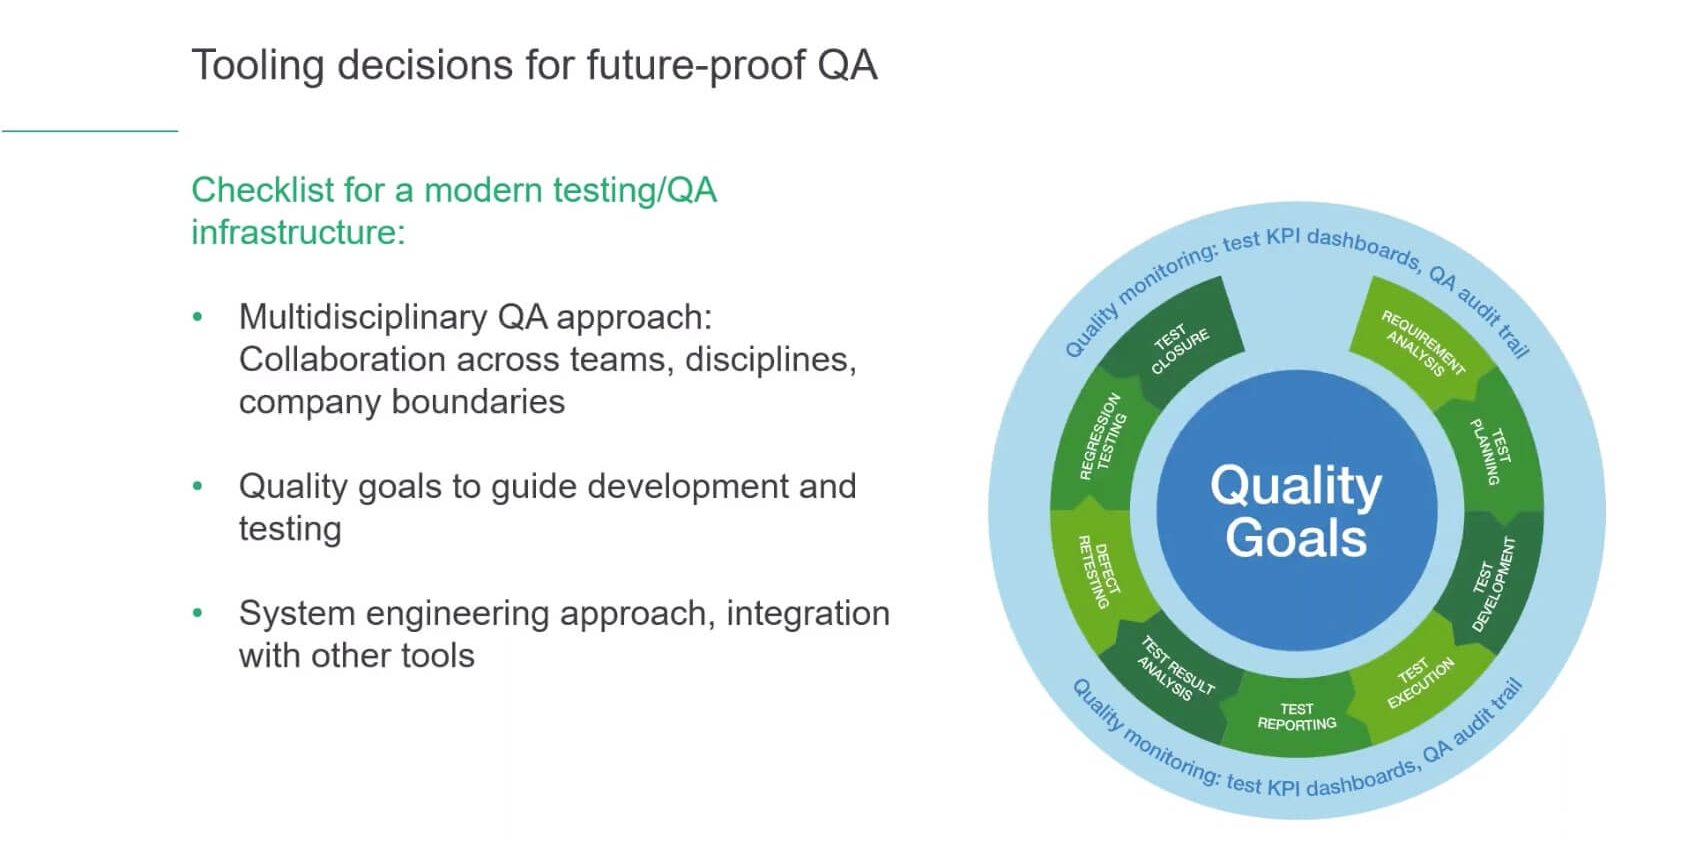 swatch Product Quality 1/2: Proven Product Quality and Easy QA Inspection with Advanced Testing Tools webinar recording